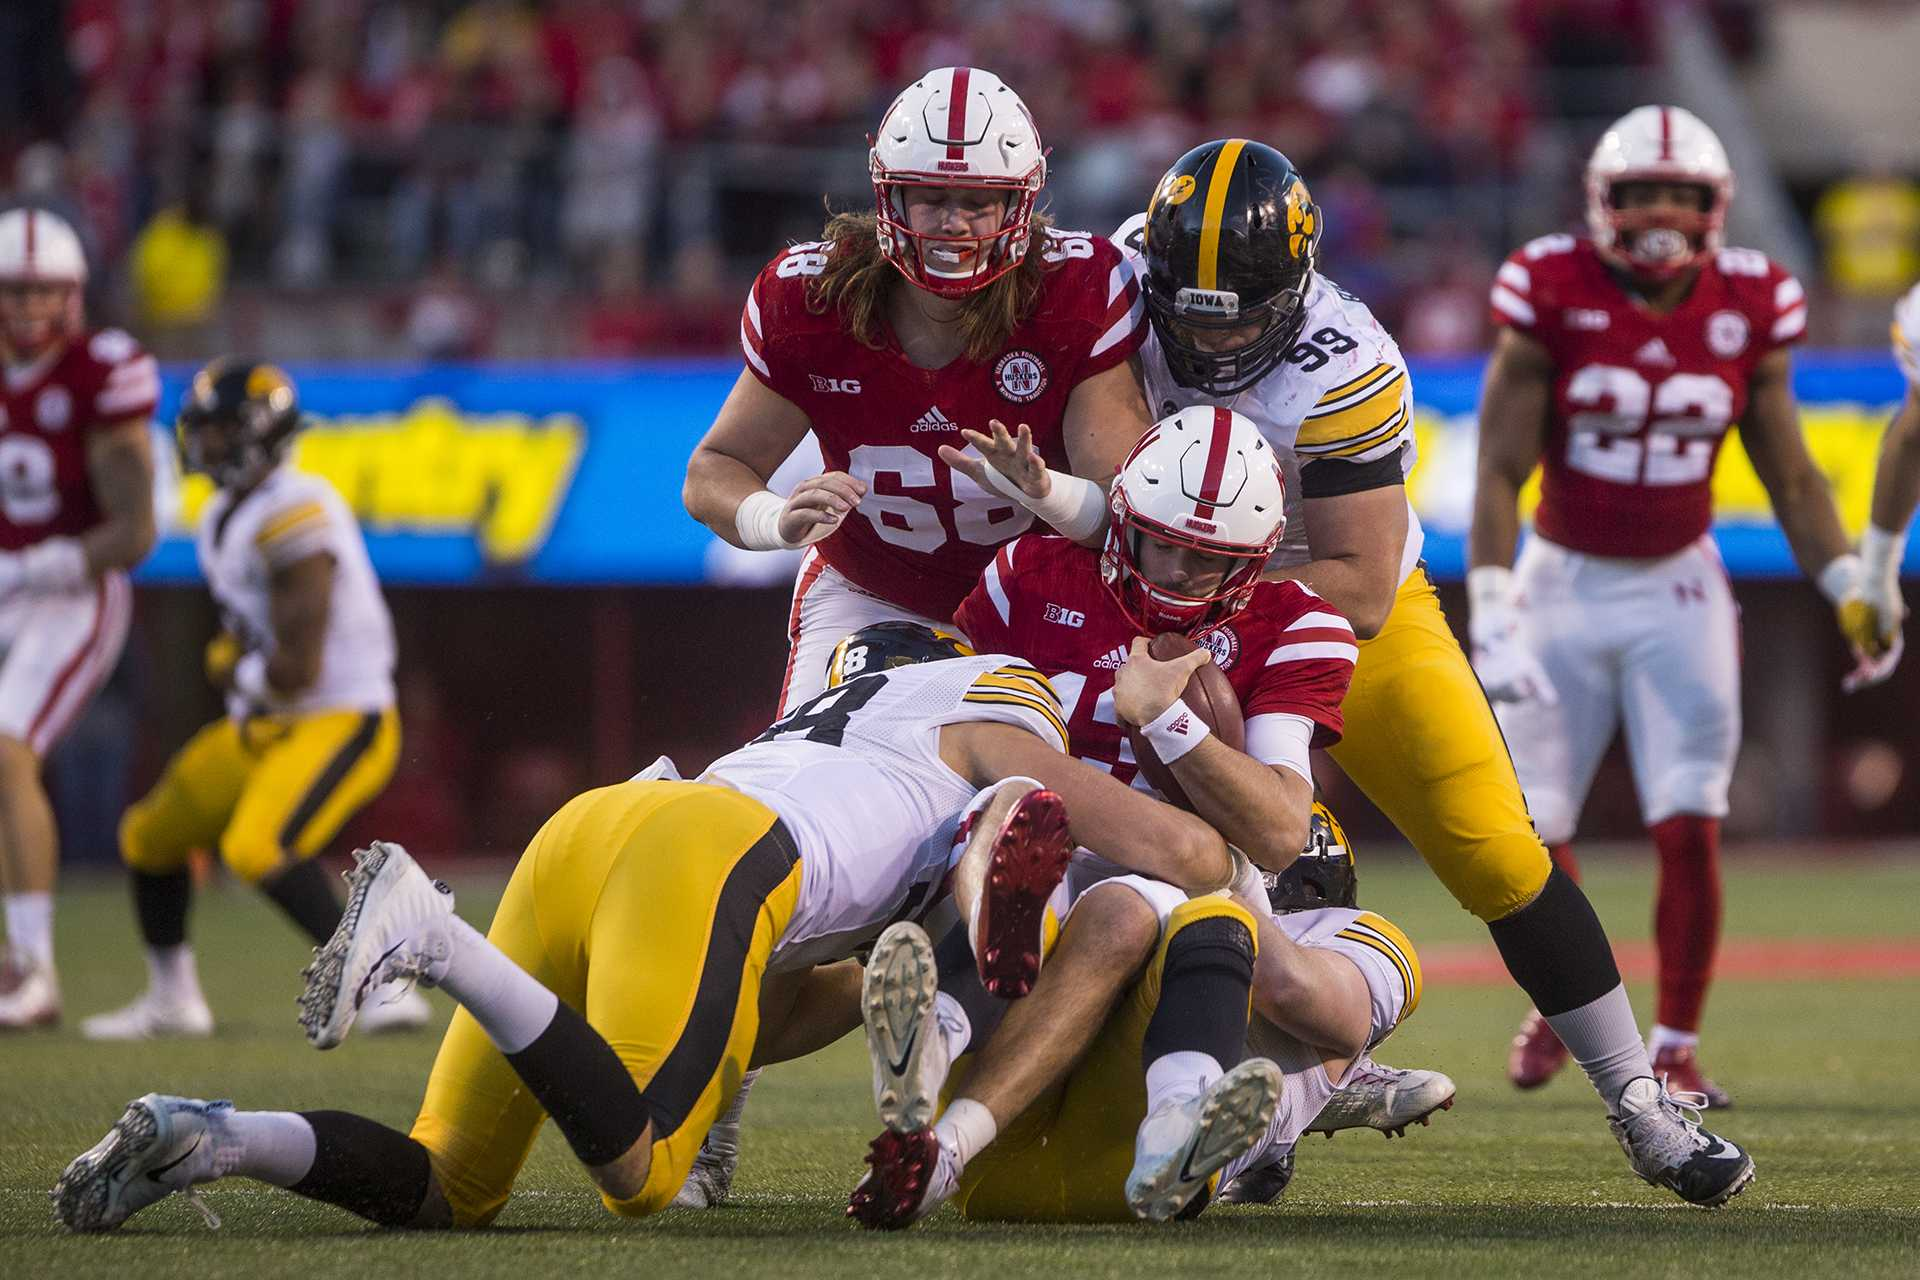 Nebraska quarterback Tanner Lee is sacked by Iowa devensive ends Parker Hesse and Anthony Nelson during Iowa's game against Nebraska at Memorial Stadium on Friday, Nov. 24th, 2017. The Hawkeyes defeated the Cornhuskers 56-14. (Nick Rohlman/The Daily Iowan)